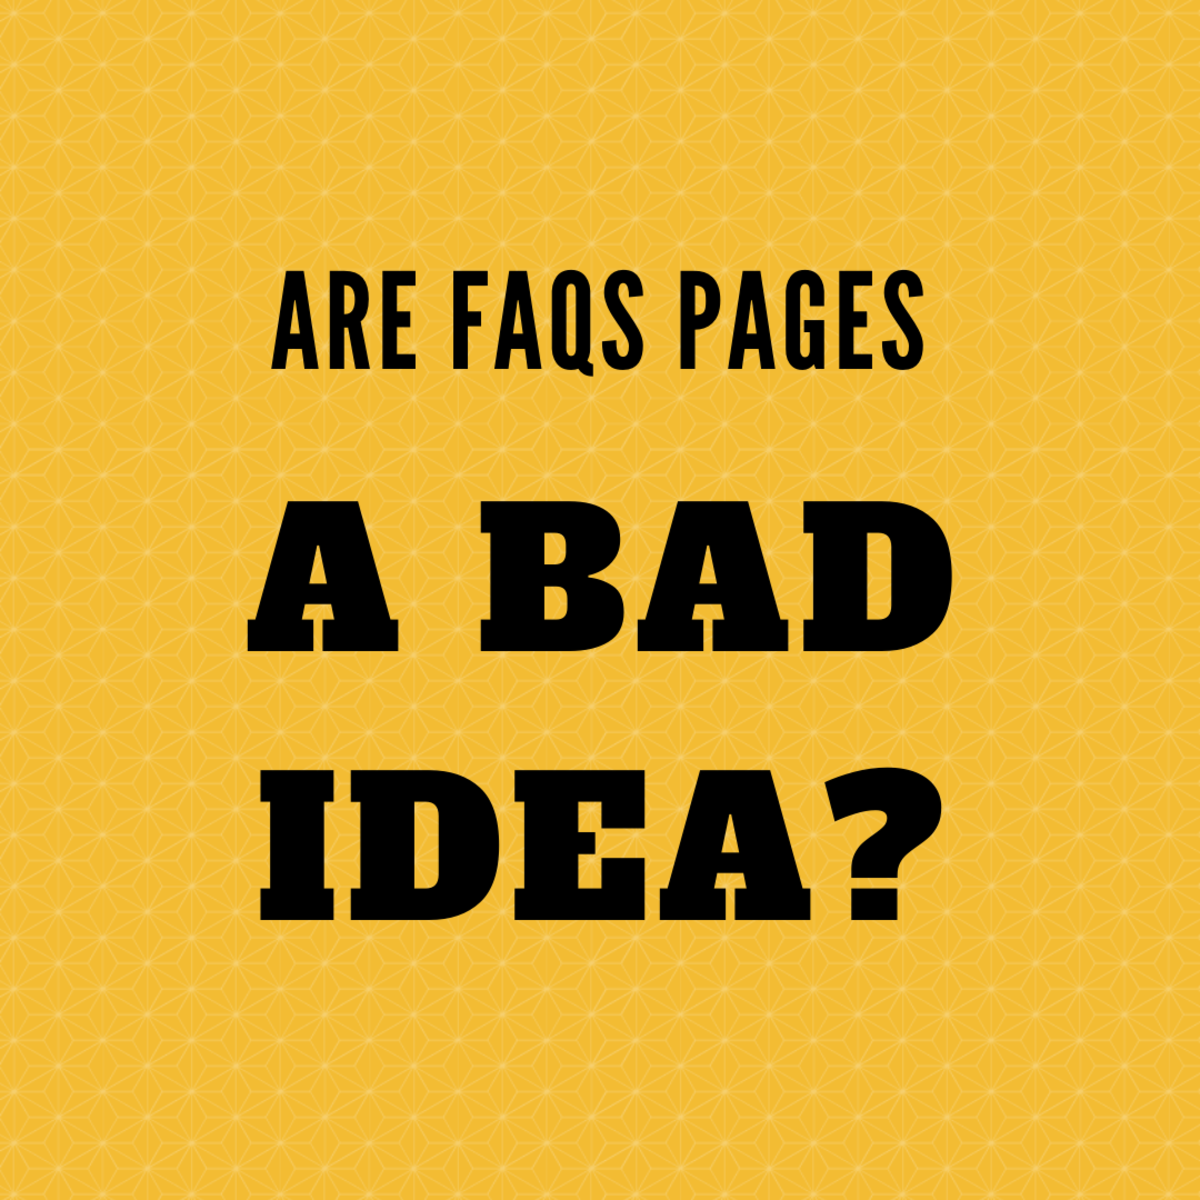 More and more content strategists are recommending against FAQs pages.